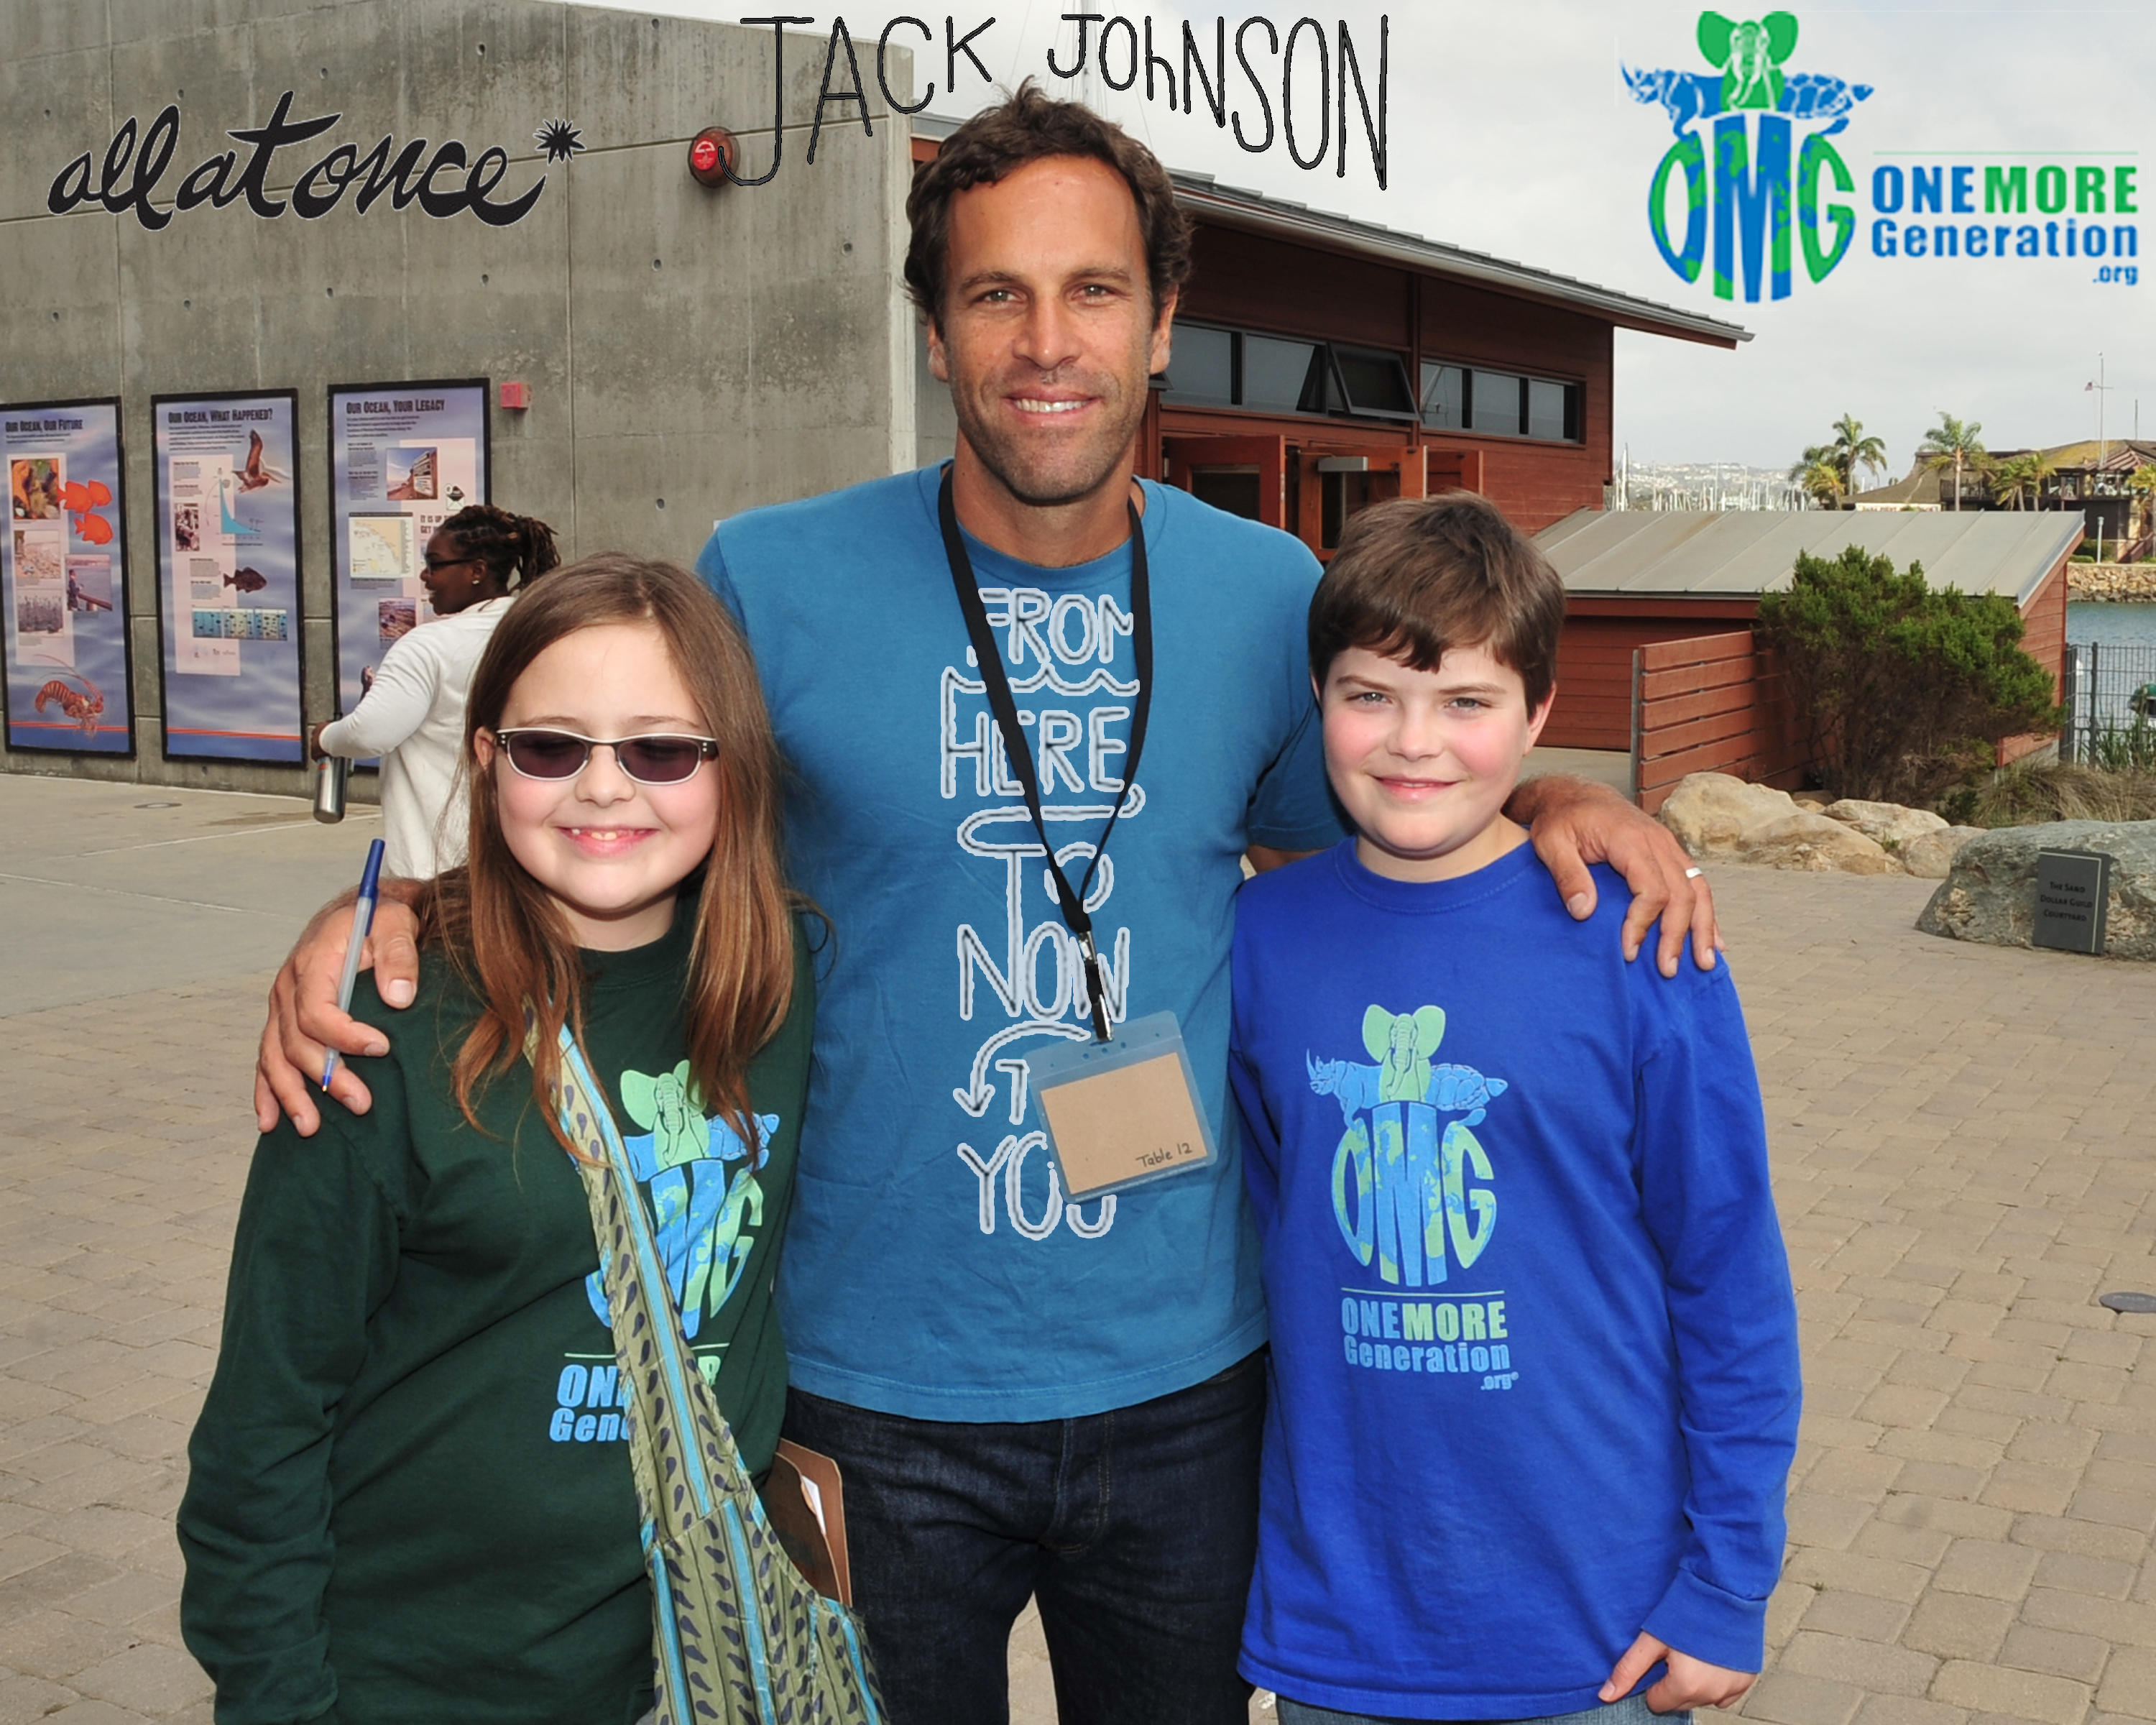 Jack Johnson is teaming up with OMG to protect our oceans